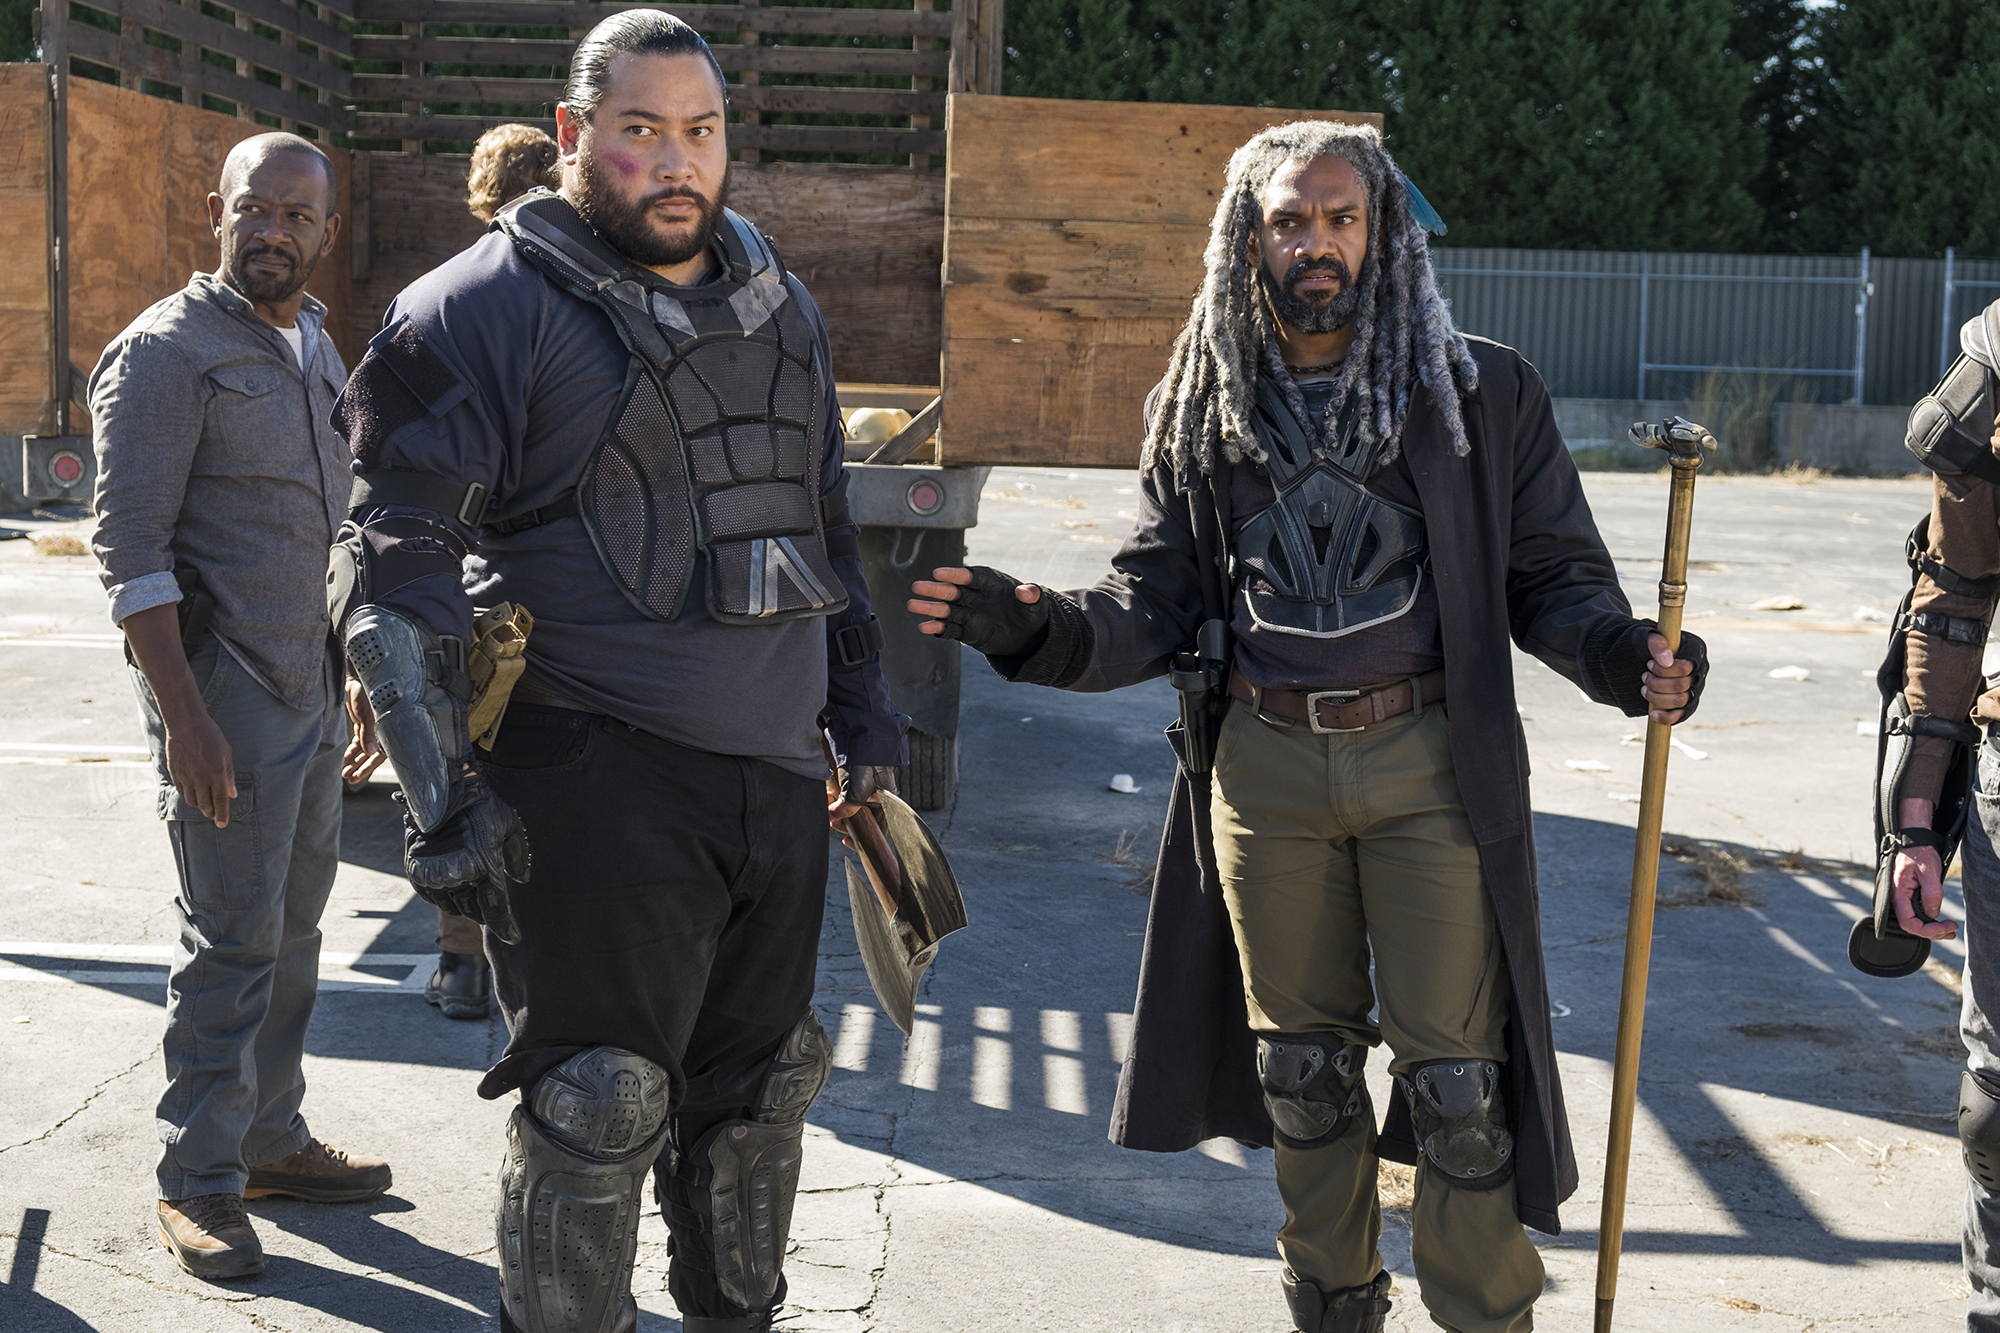 Khary Payton as Ezekiel, Lennie James as Morgan Jones, Cooper Andrews as Jerry - The Walking Dead, Season 7, Episode 13